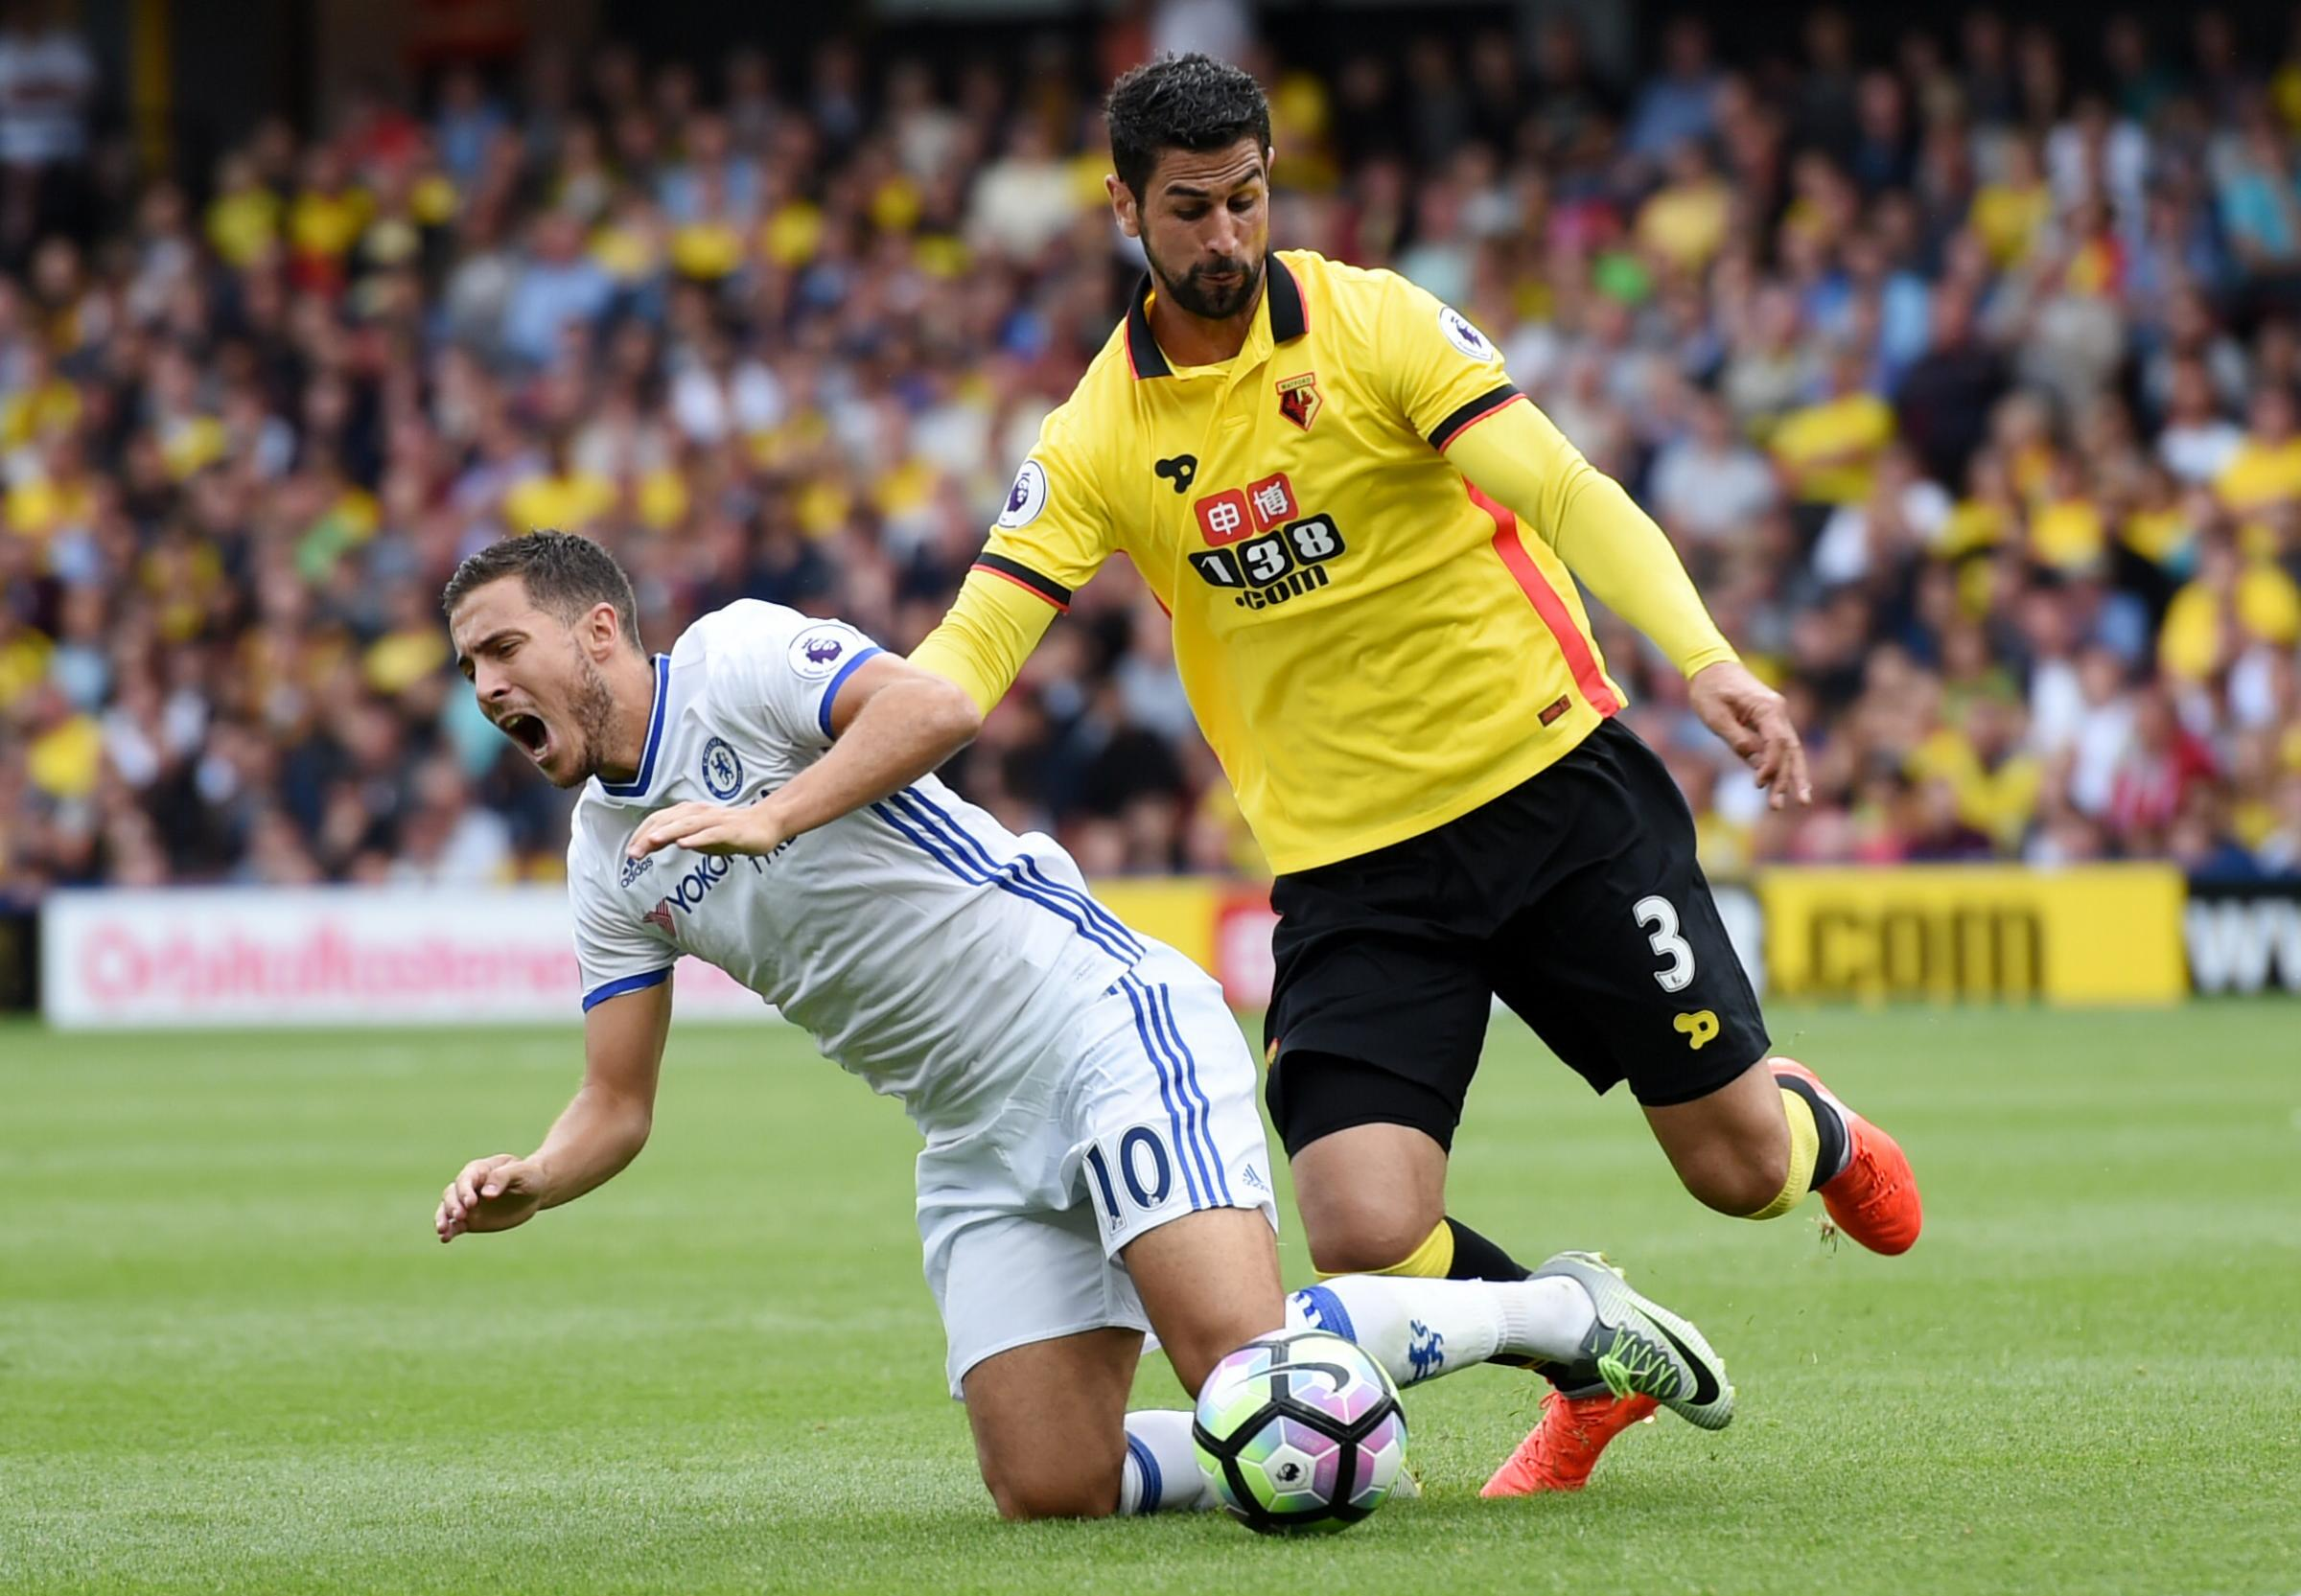 Chelsea come from behind to beat Watford